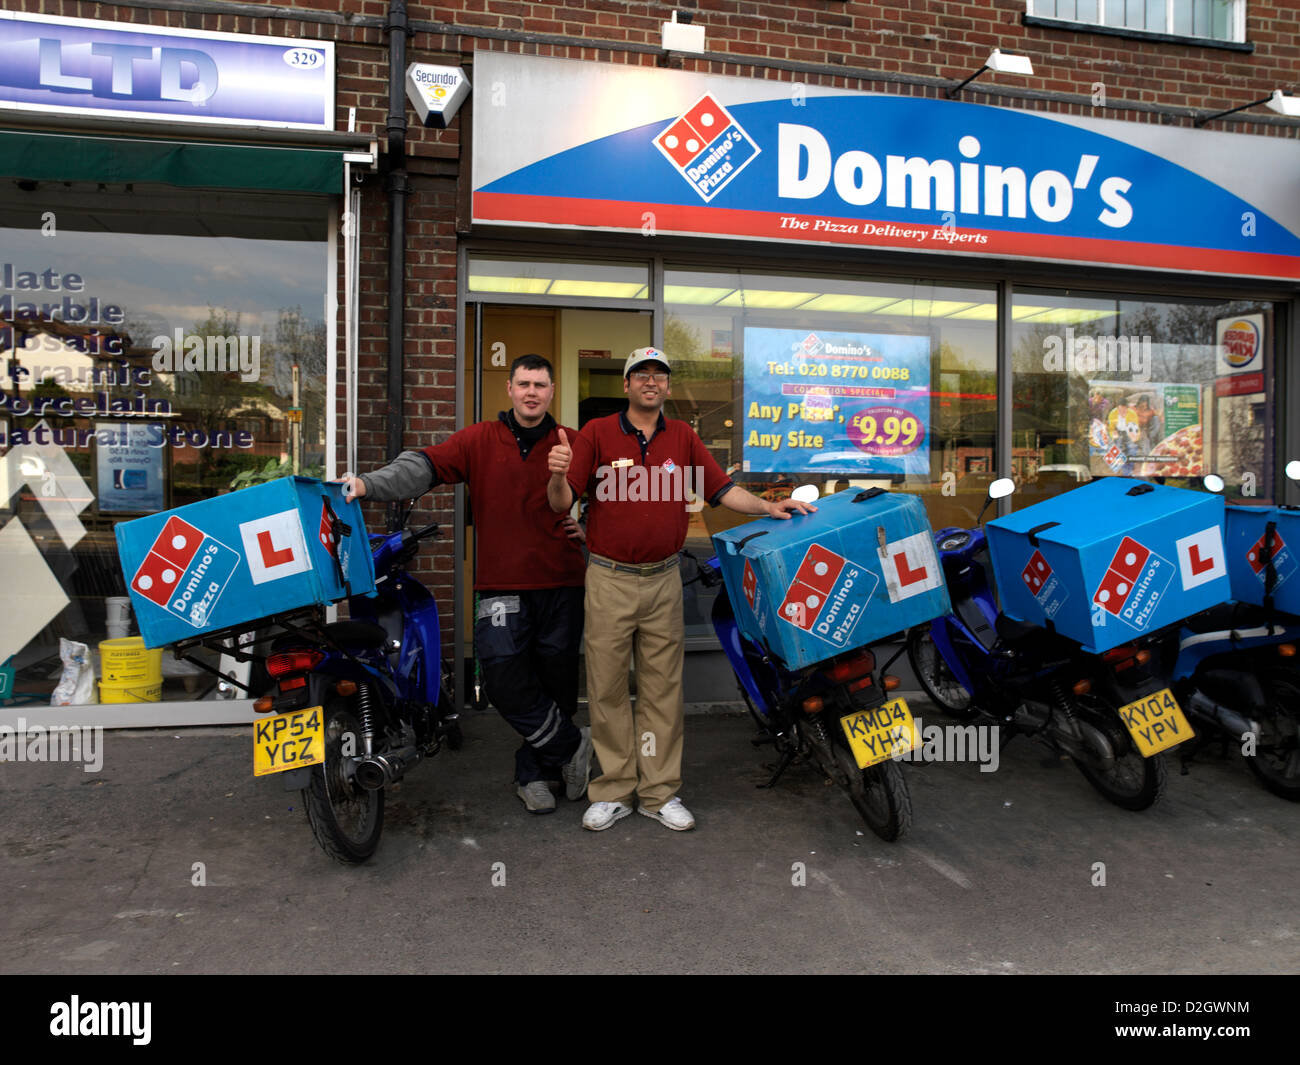 delivery rider outside dominos pizza in sutton surrey england stock photo royalty free image. Black Bedroom Furniture Sets. Home Design Ideas